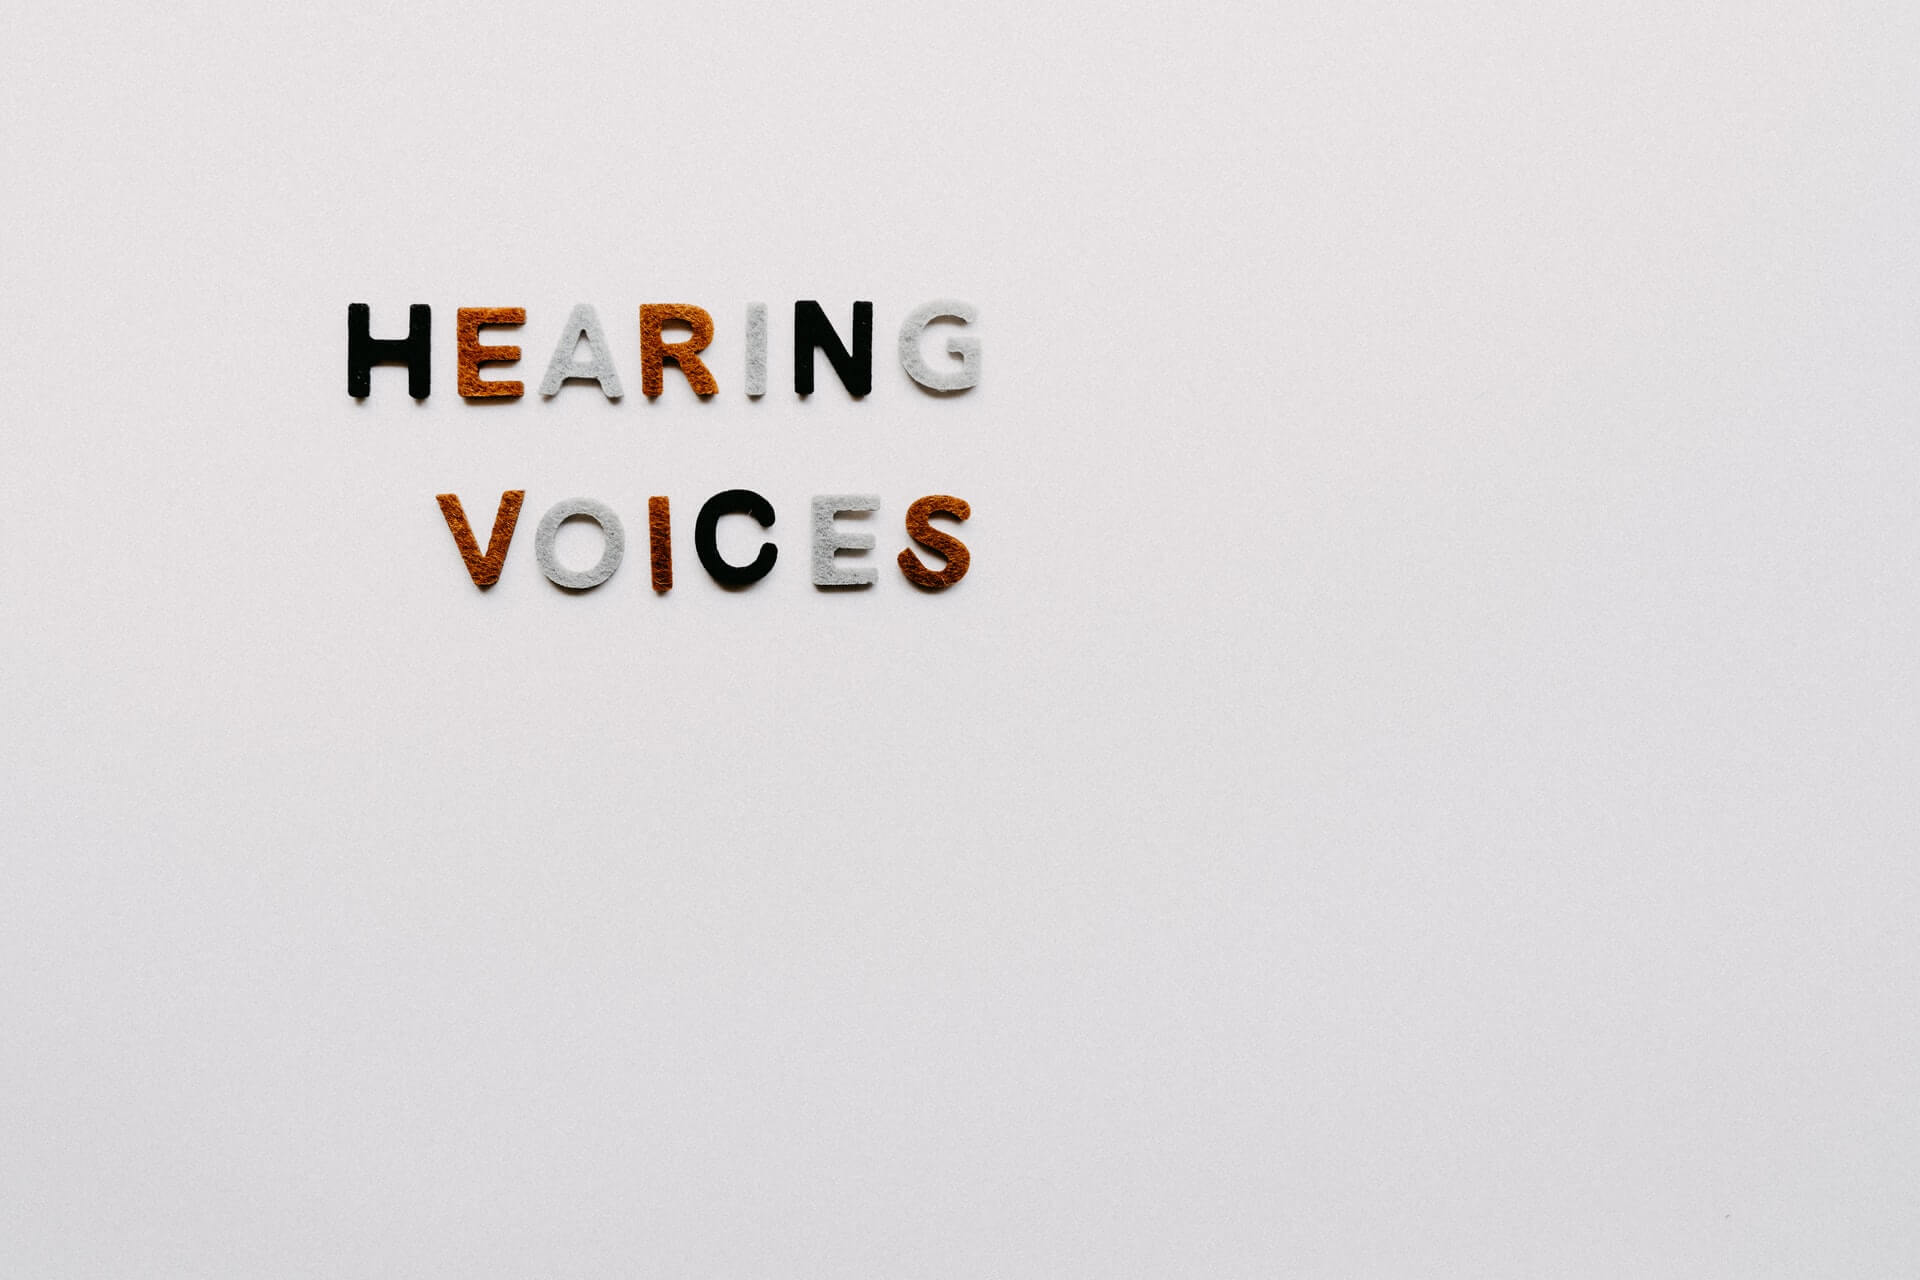 hearing-voices-head-sign-colorful-letters